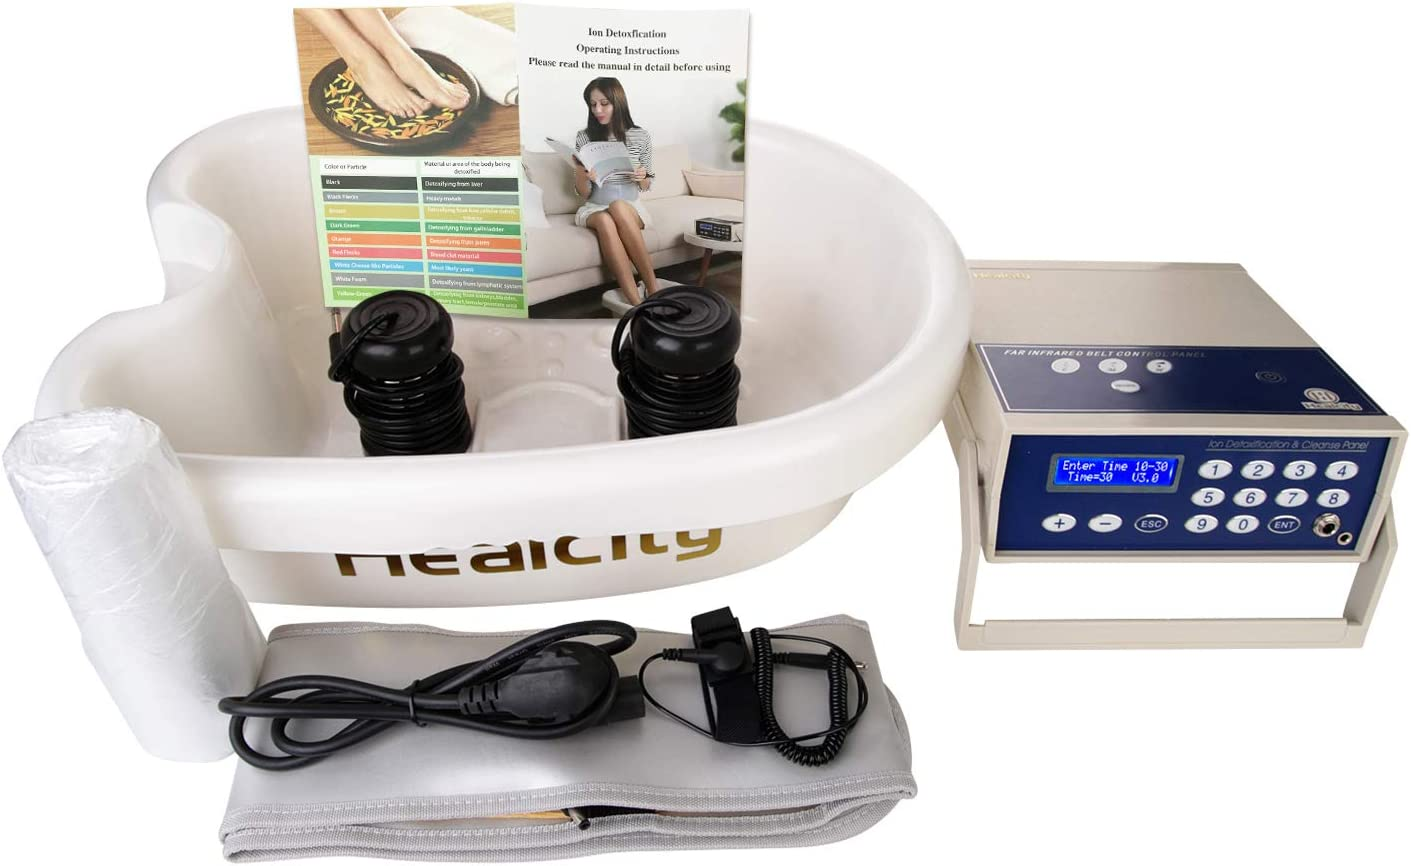 Ionic Foot Bath Detox Machine Holiday Gift Negative Hydrogen System by Healcity with Professional Tub Basin 10 Liners